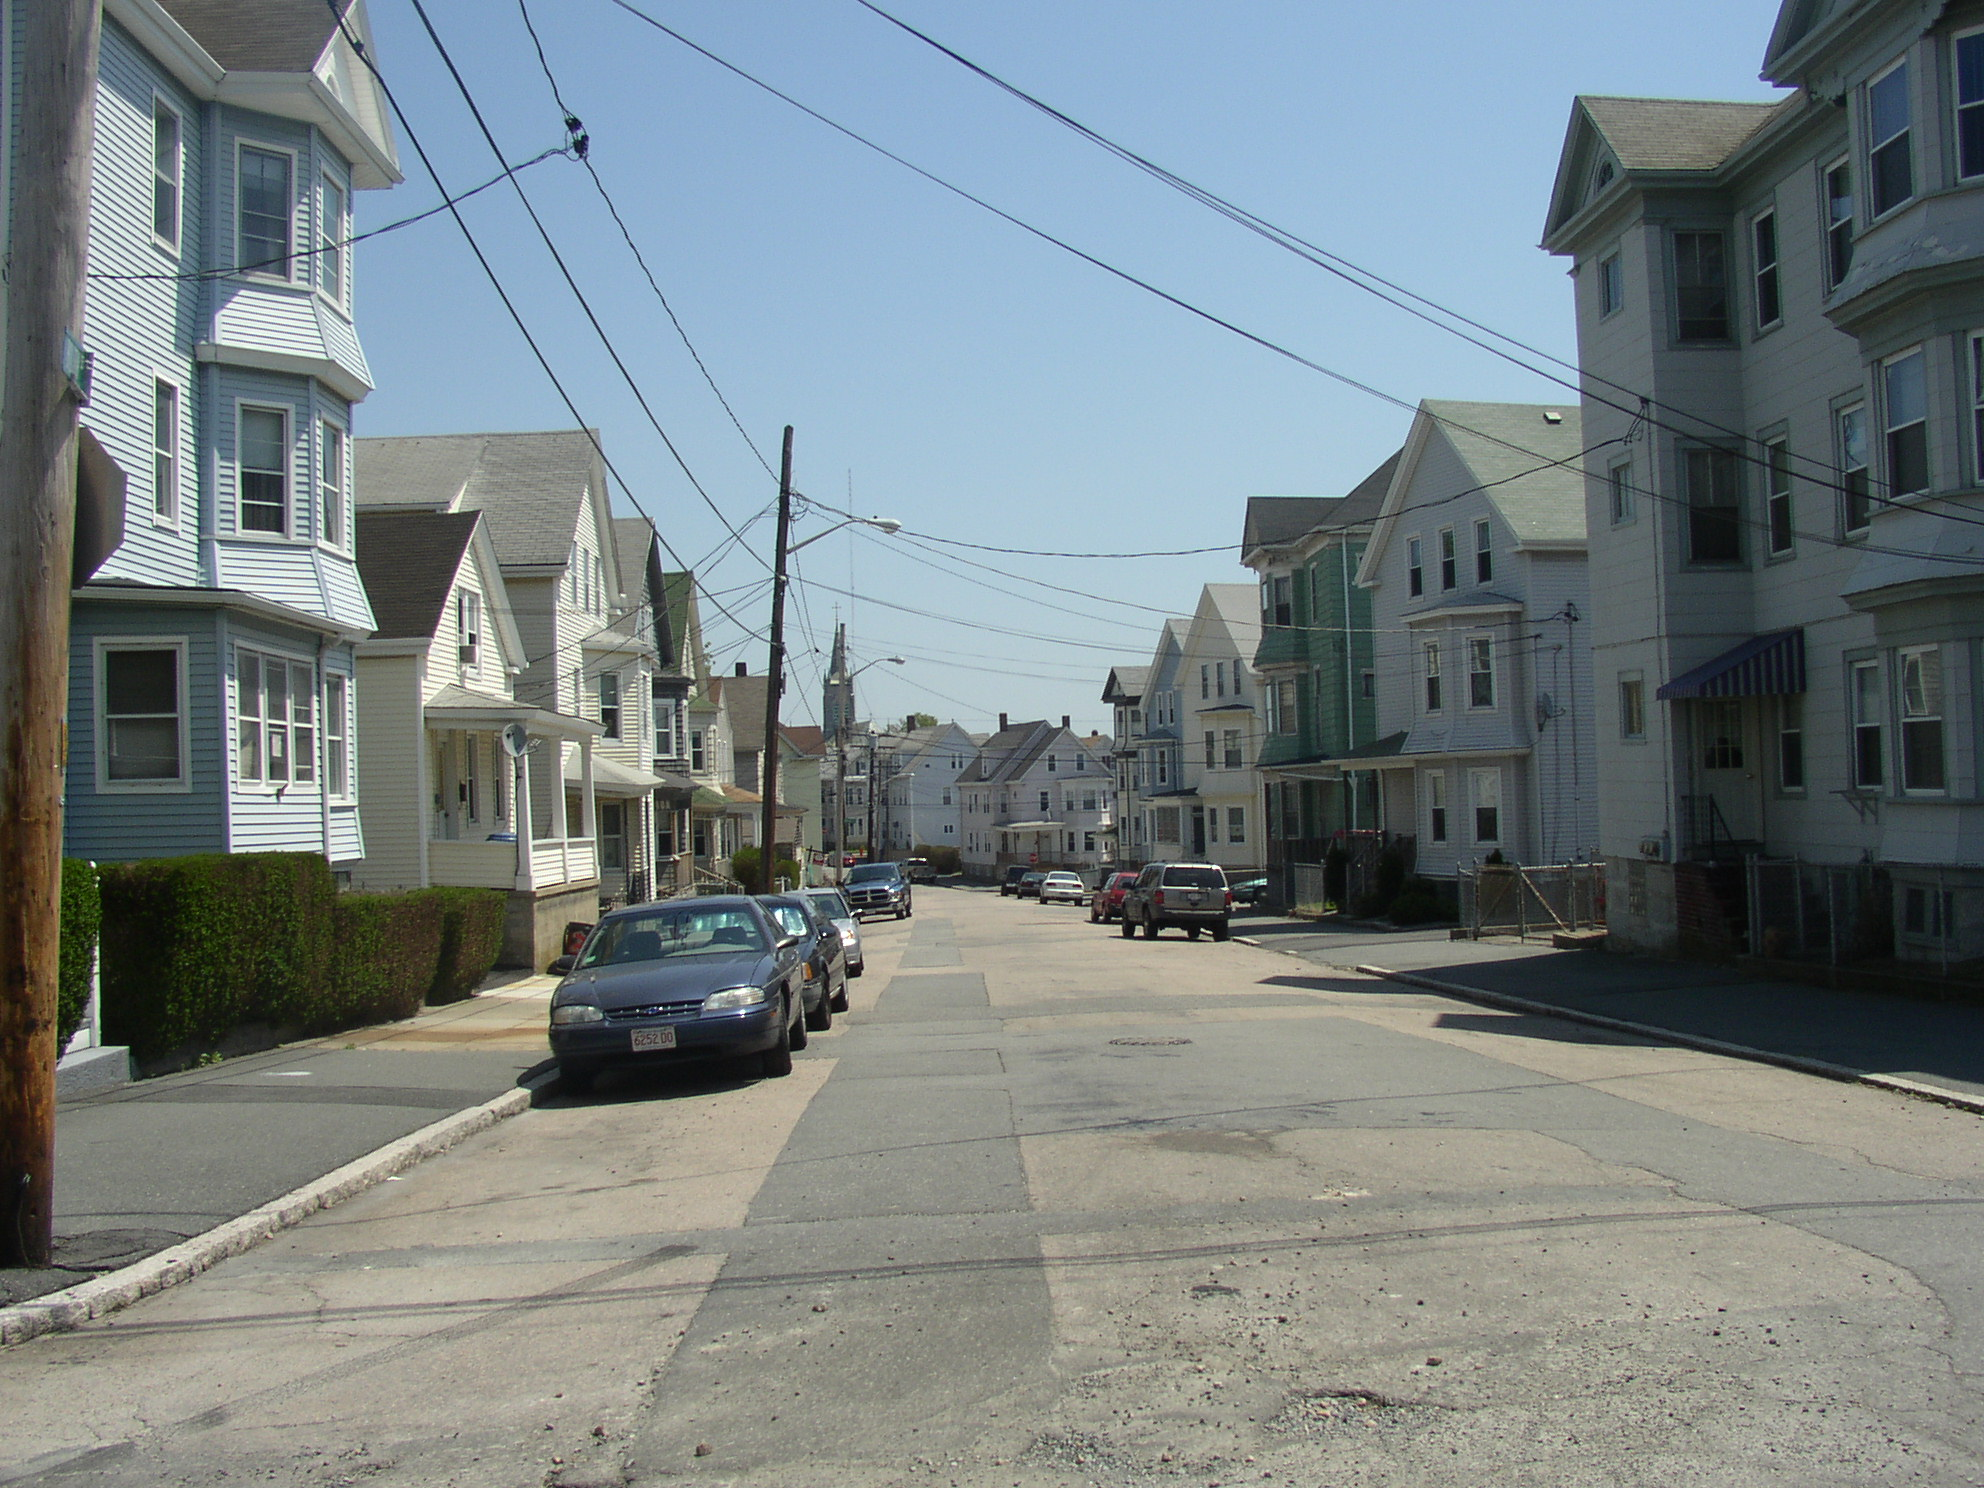 A South End residential community today